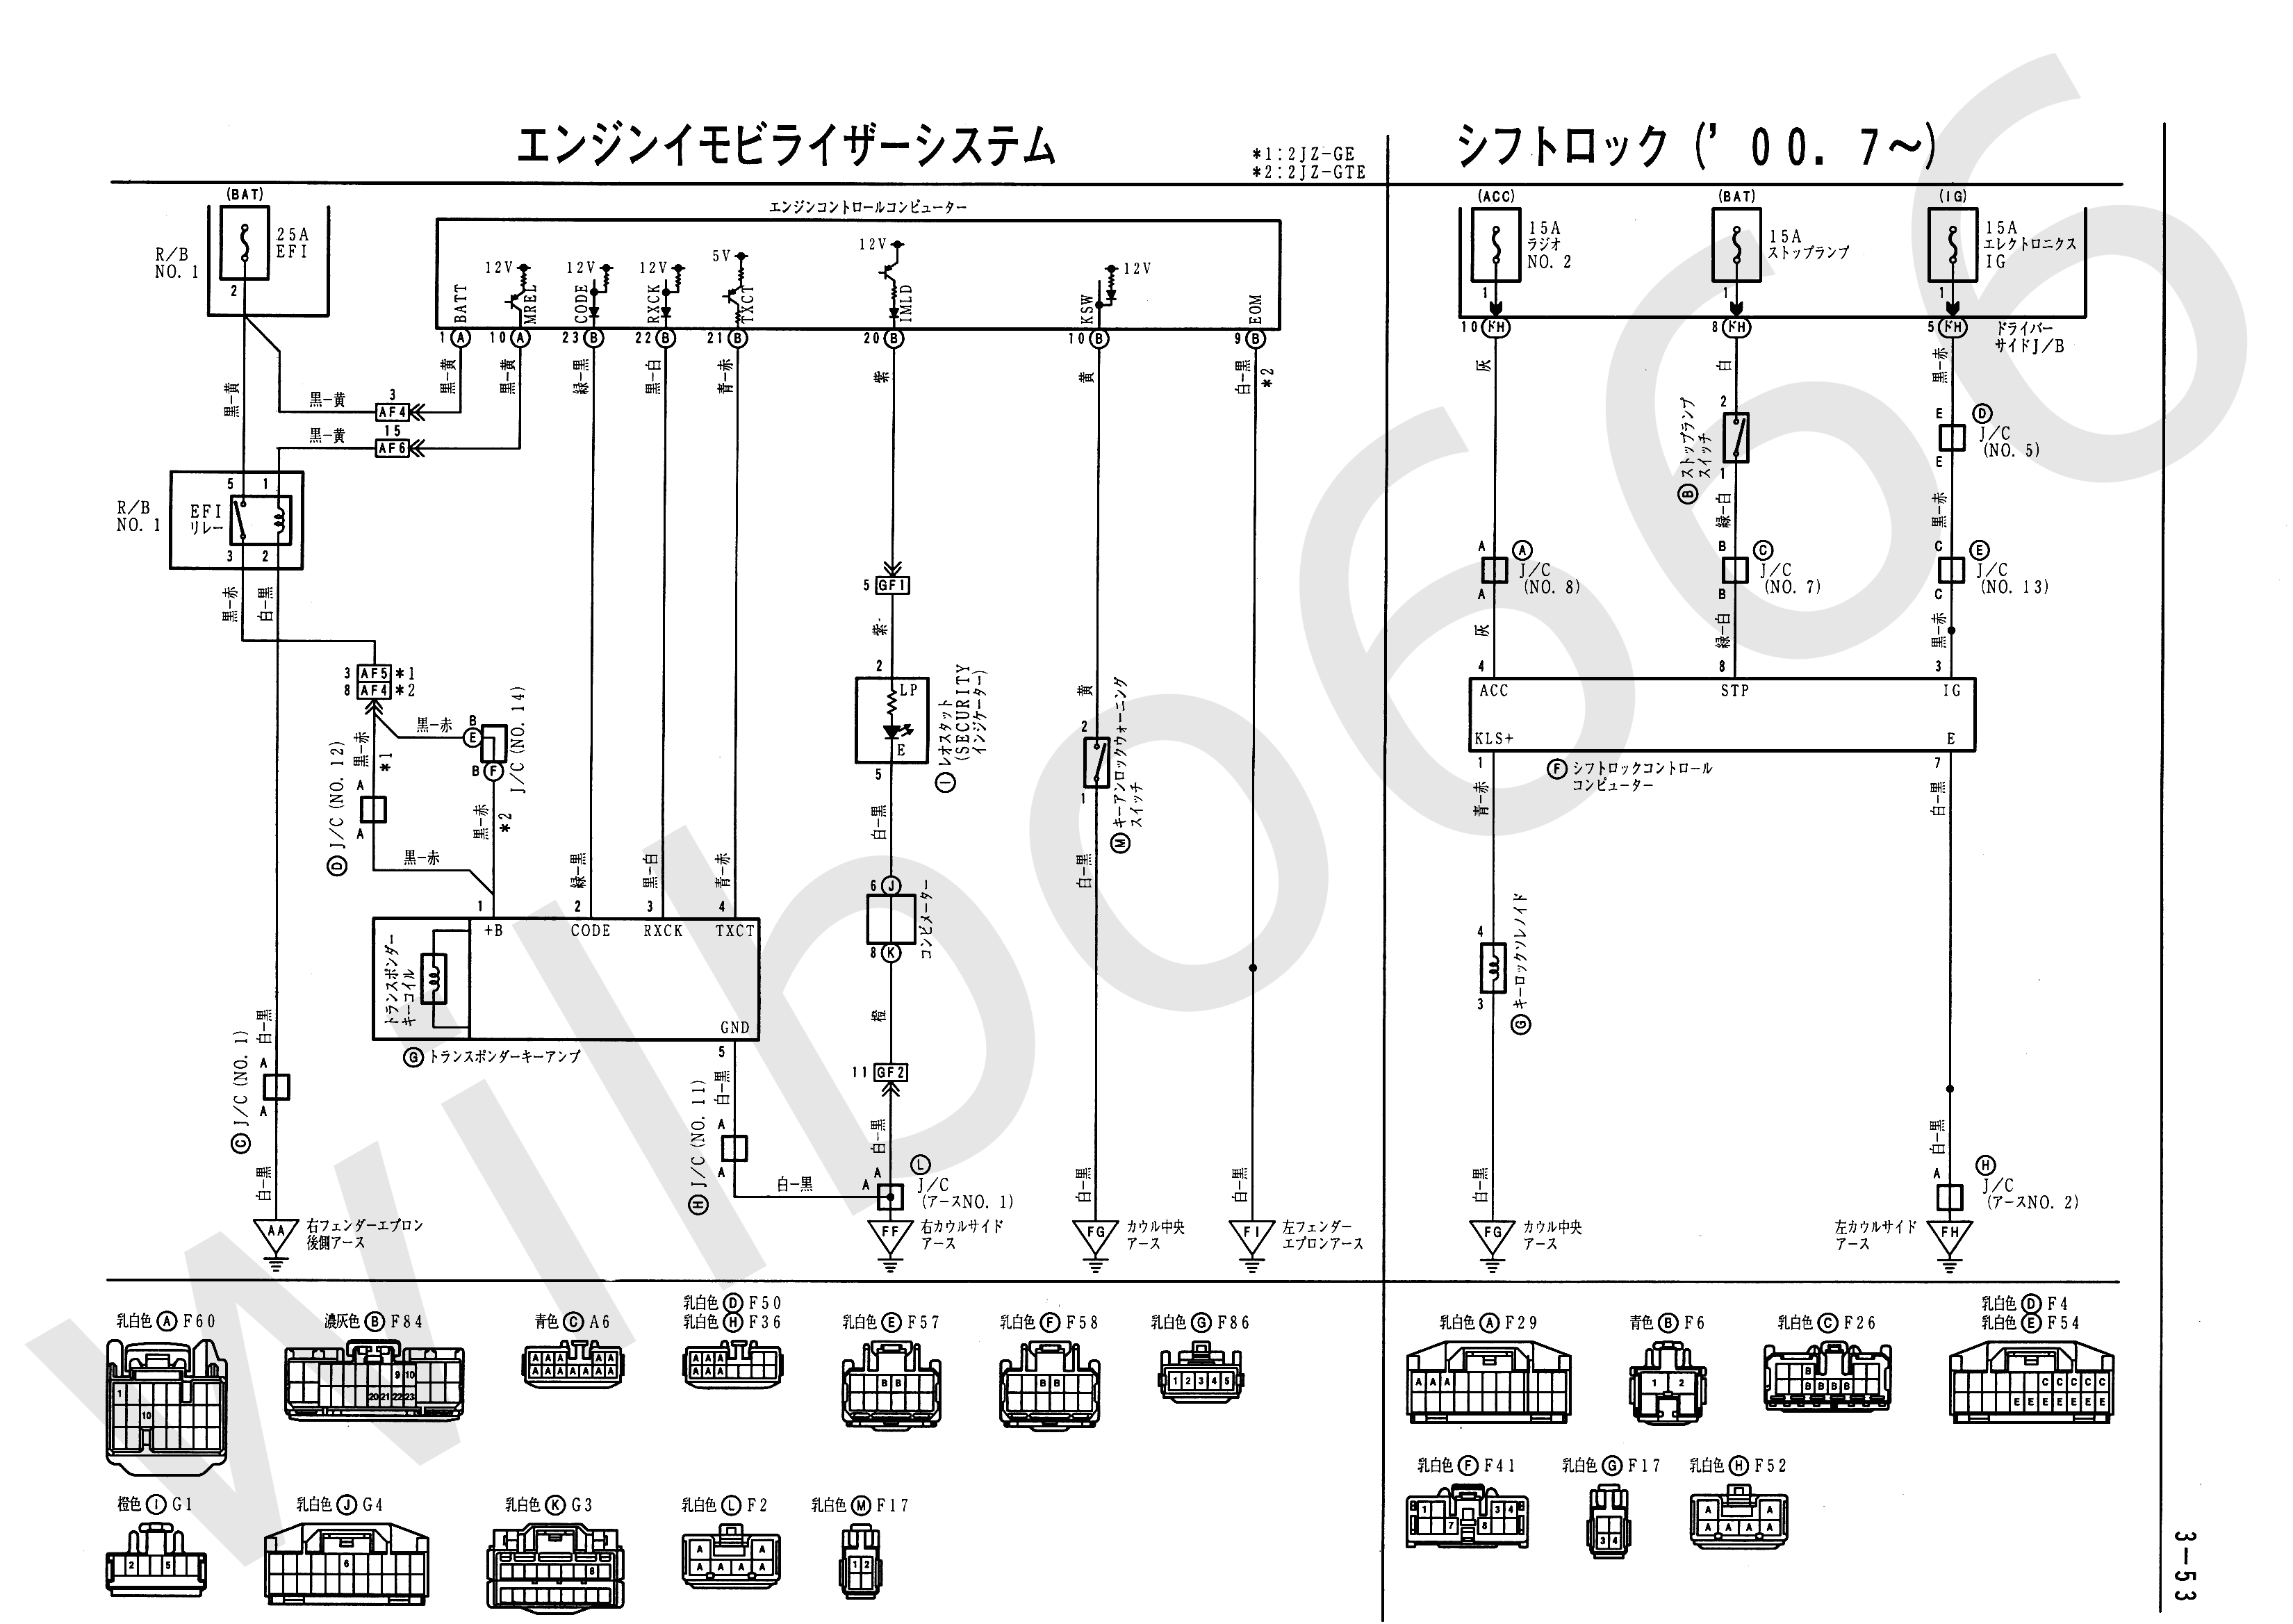 JZS161 Electrical Wiring Diagram 6748505 3 53 wilbo666 2jz gte vvti jzs161 aristo engine wiring